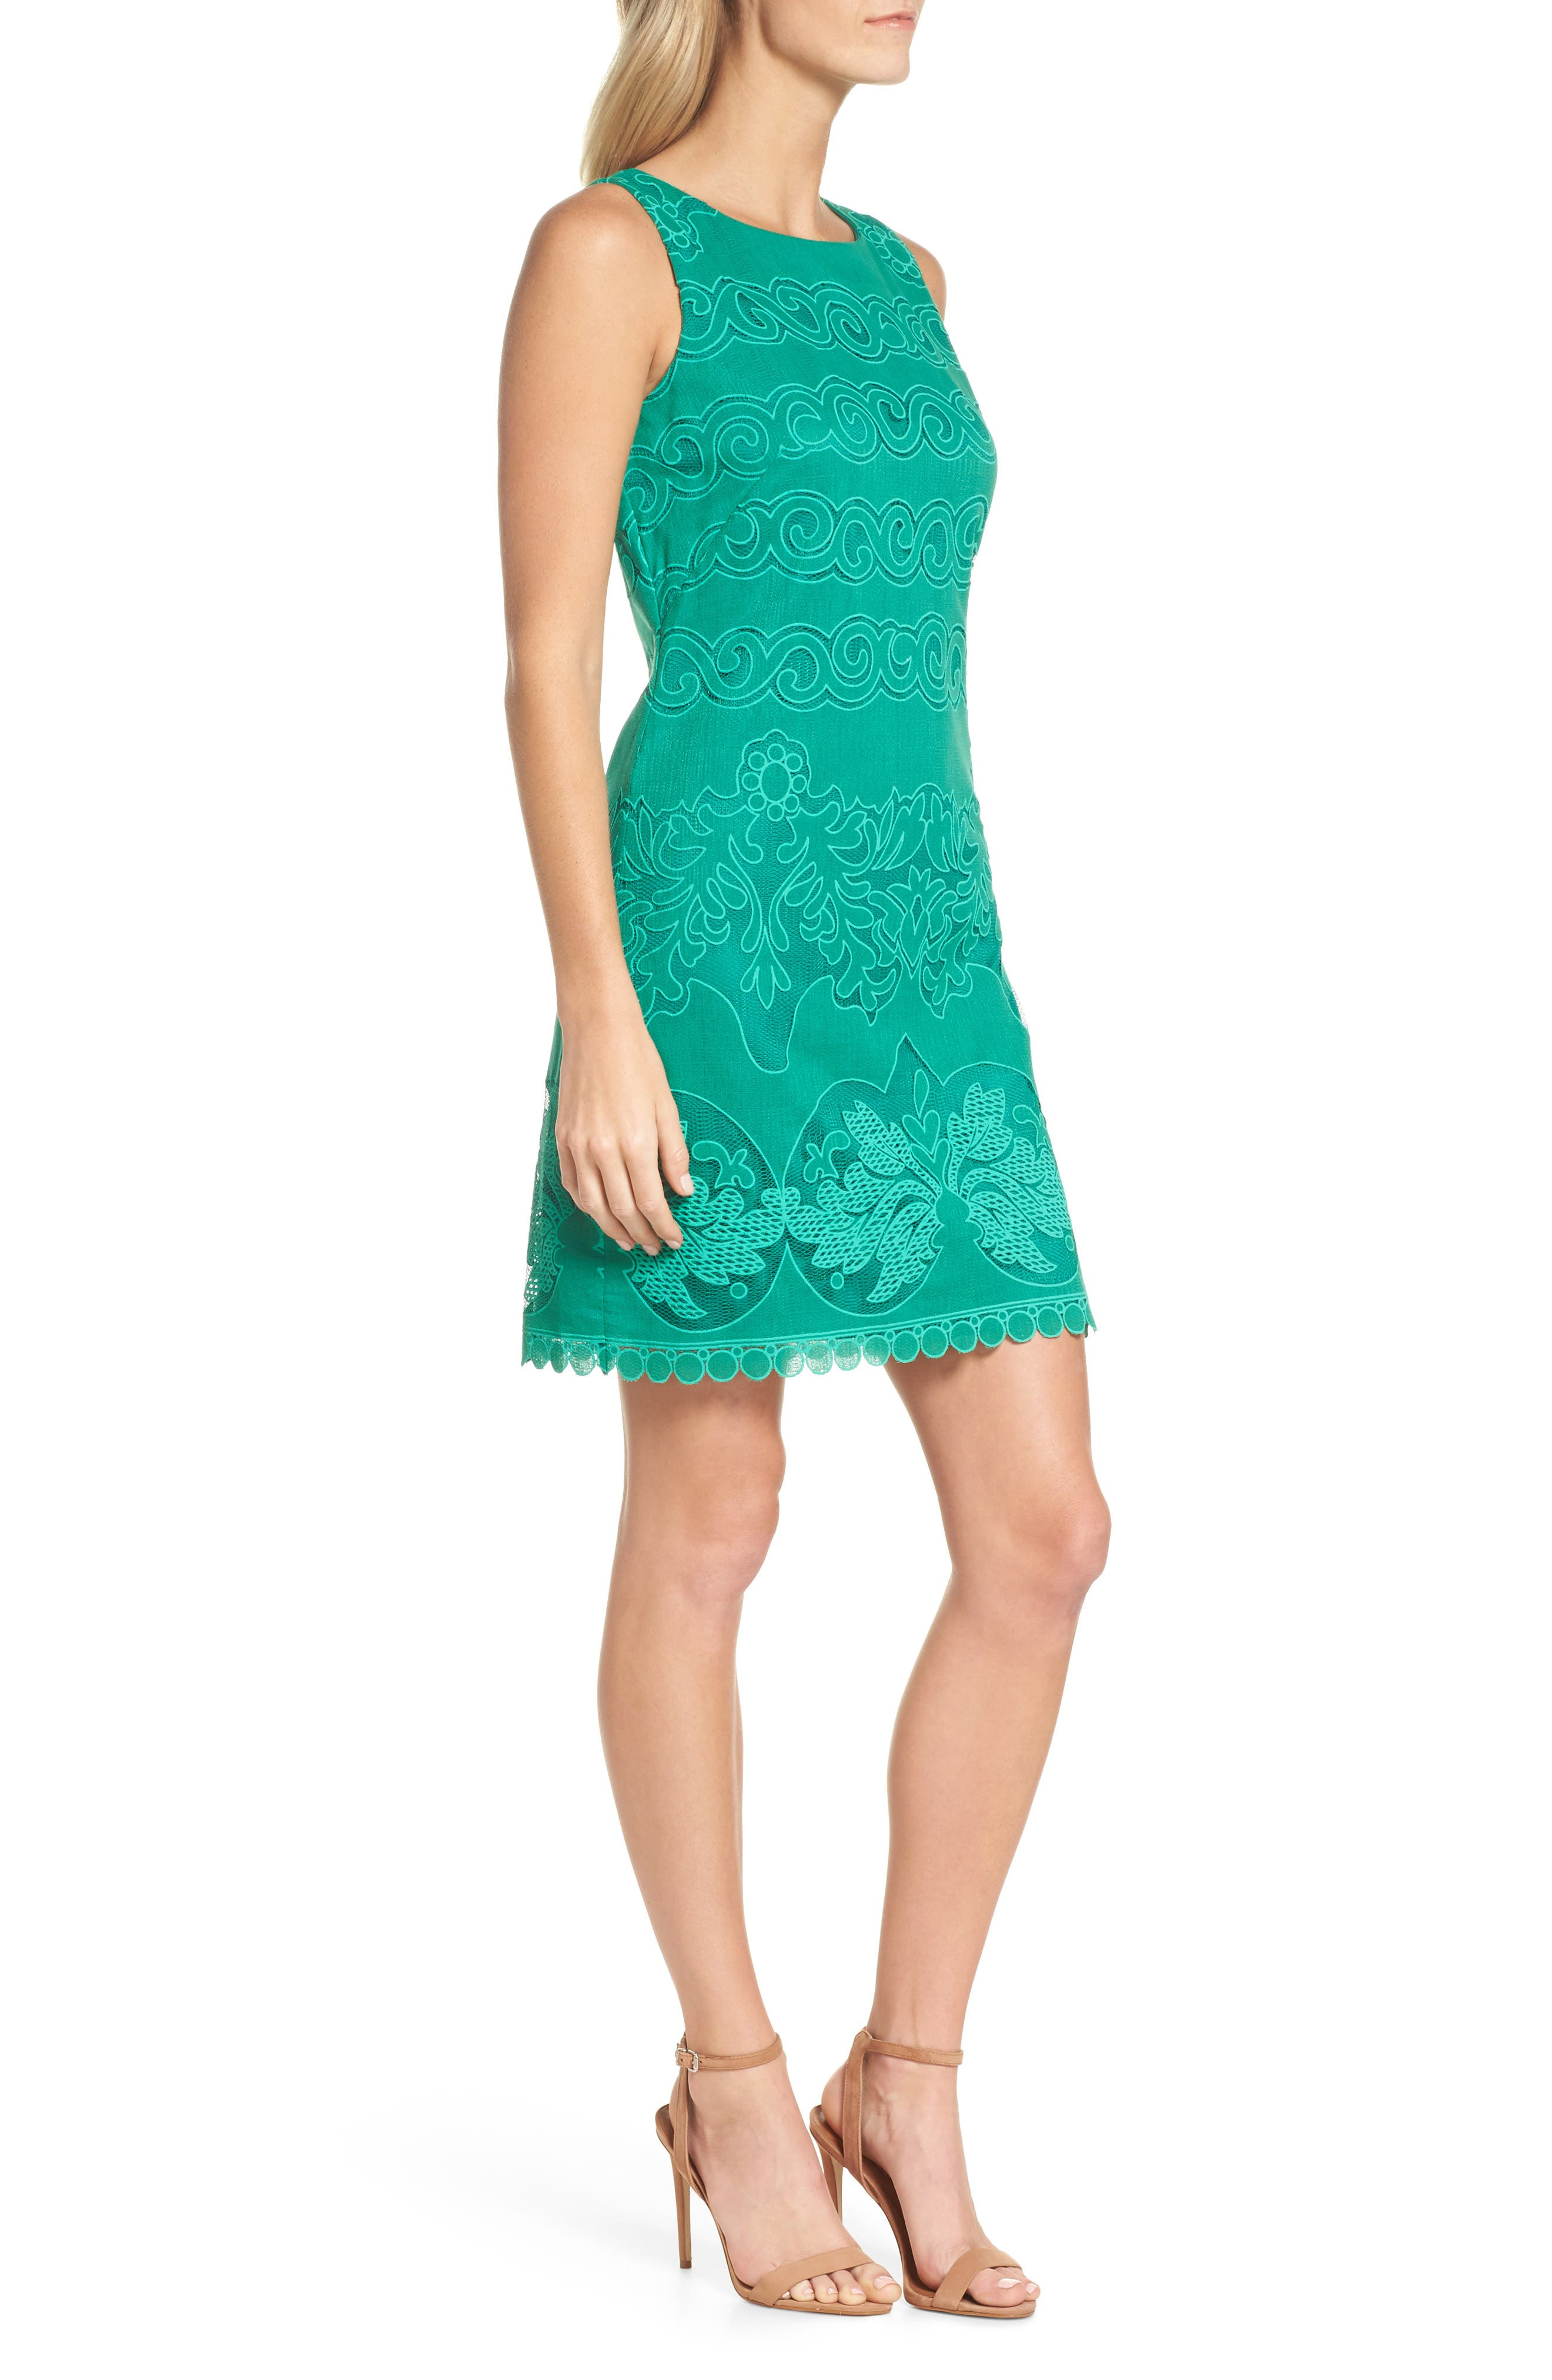 A-Line Dress,                             Alternate thumbnail 3, color,                             Green